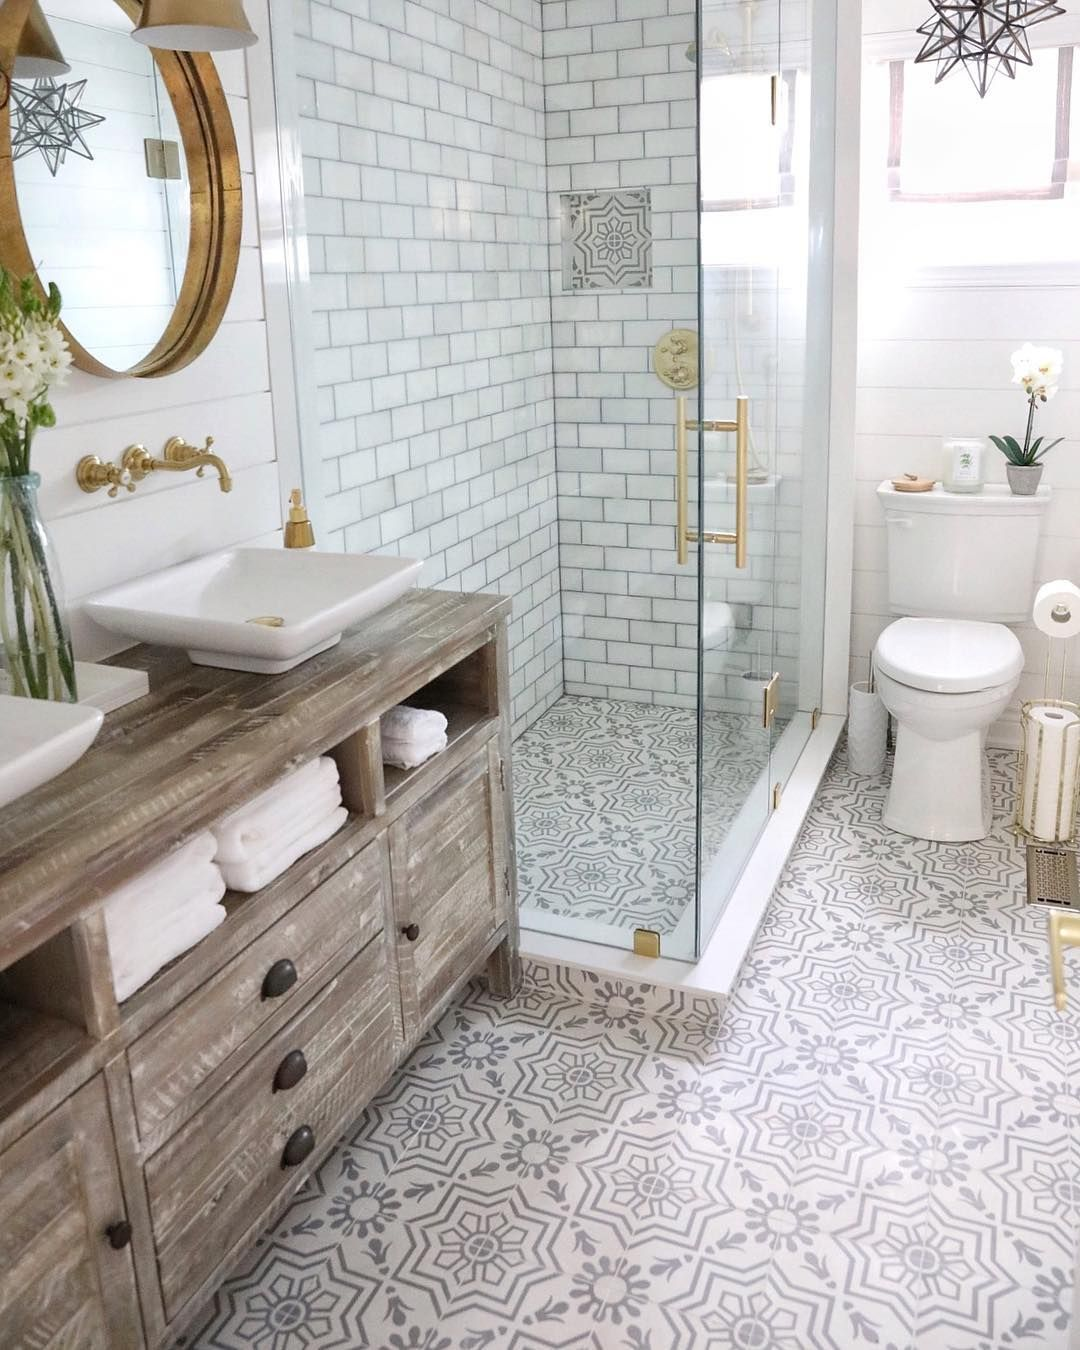 Cement Tile Shop On Instagram The Level Of Detail In This Project From Simplybeautifuleating Is Amazi Bathroom Interior Design Big Bathrooms Bathroom Trends